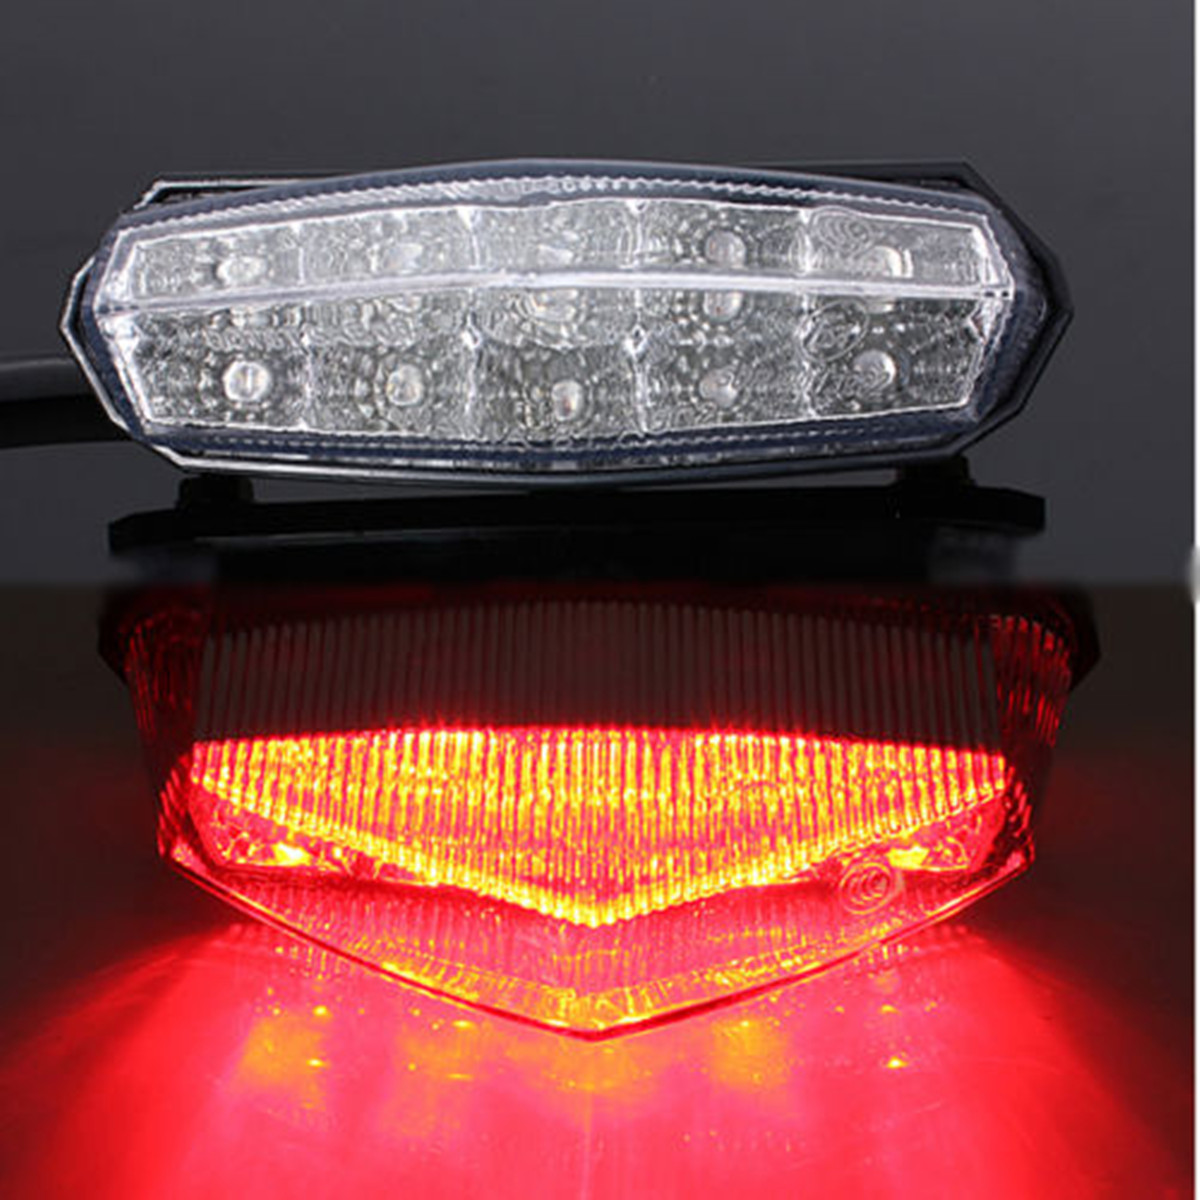 Motorcycle Motorbike ATV Quad LED License Plate Rear Tail Stop Brake Indicator Light Lamp